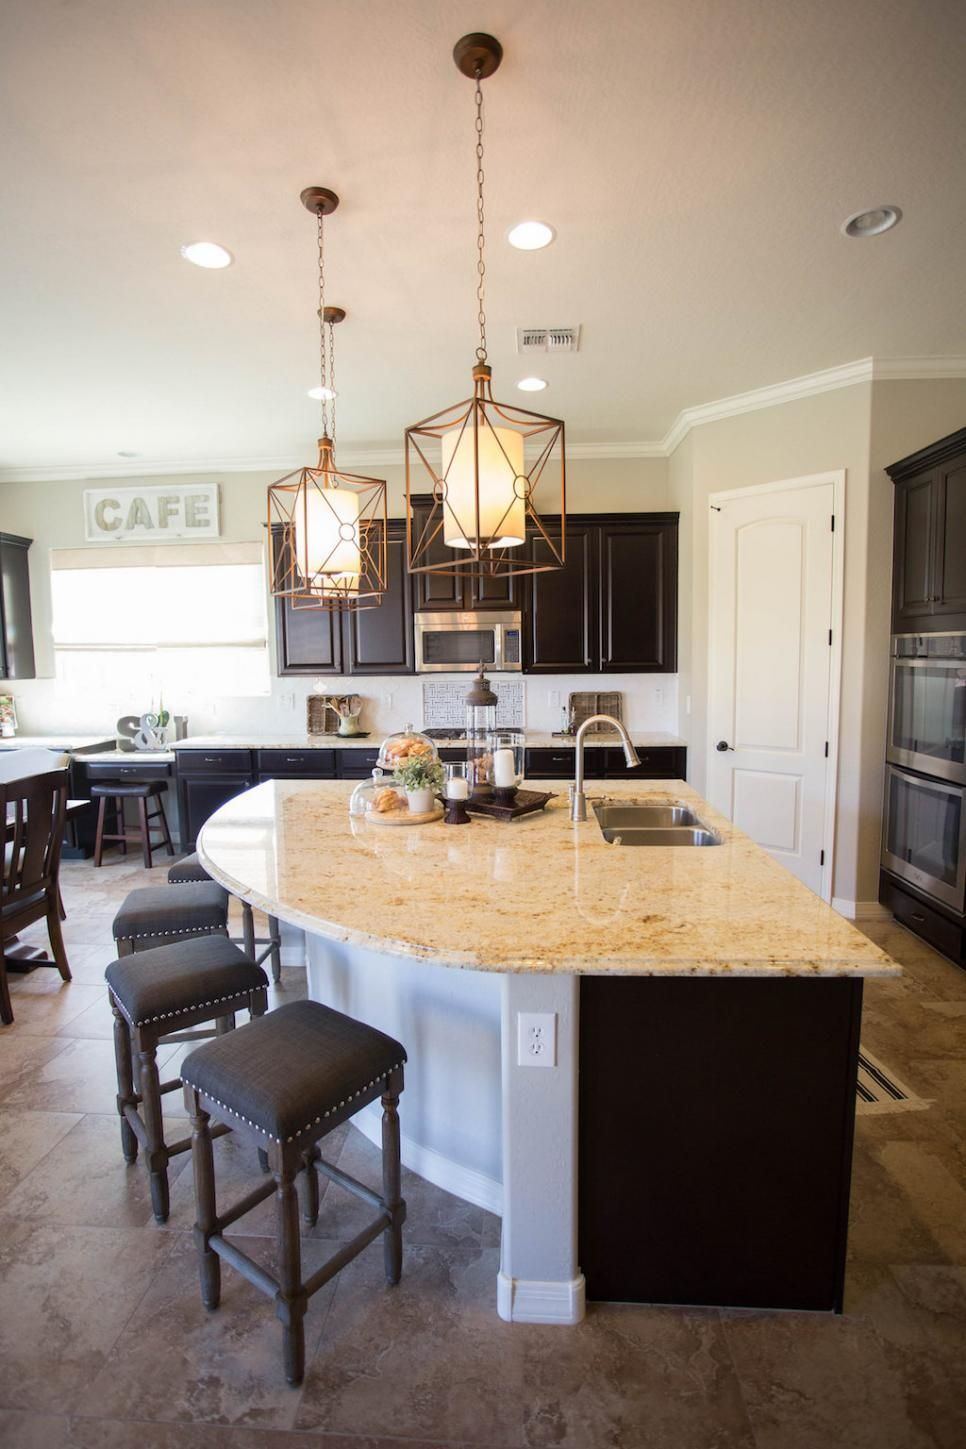 explanation of kitchen remodel permits | dream home-kitchen and